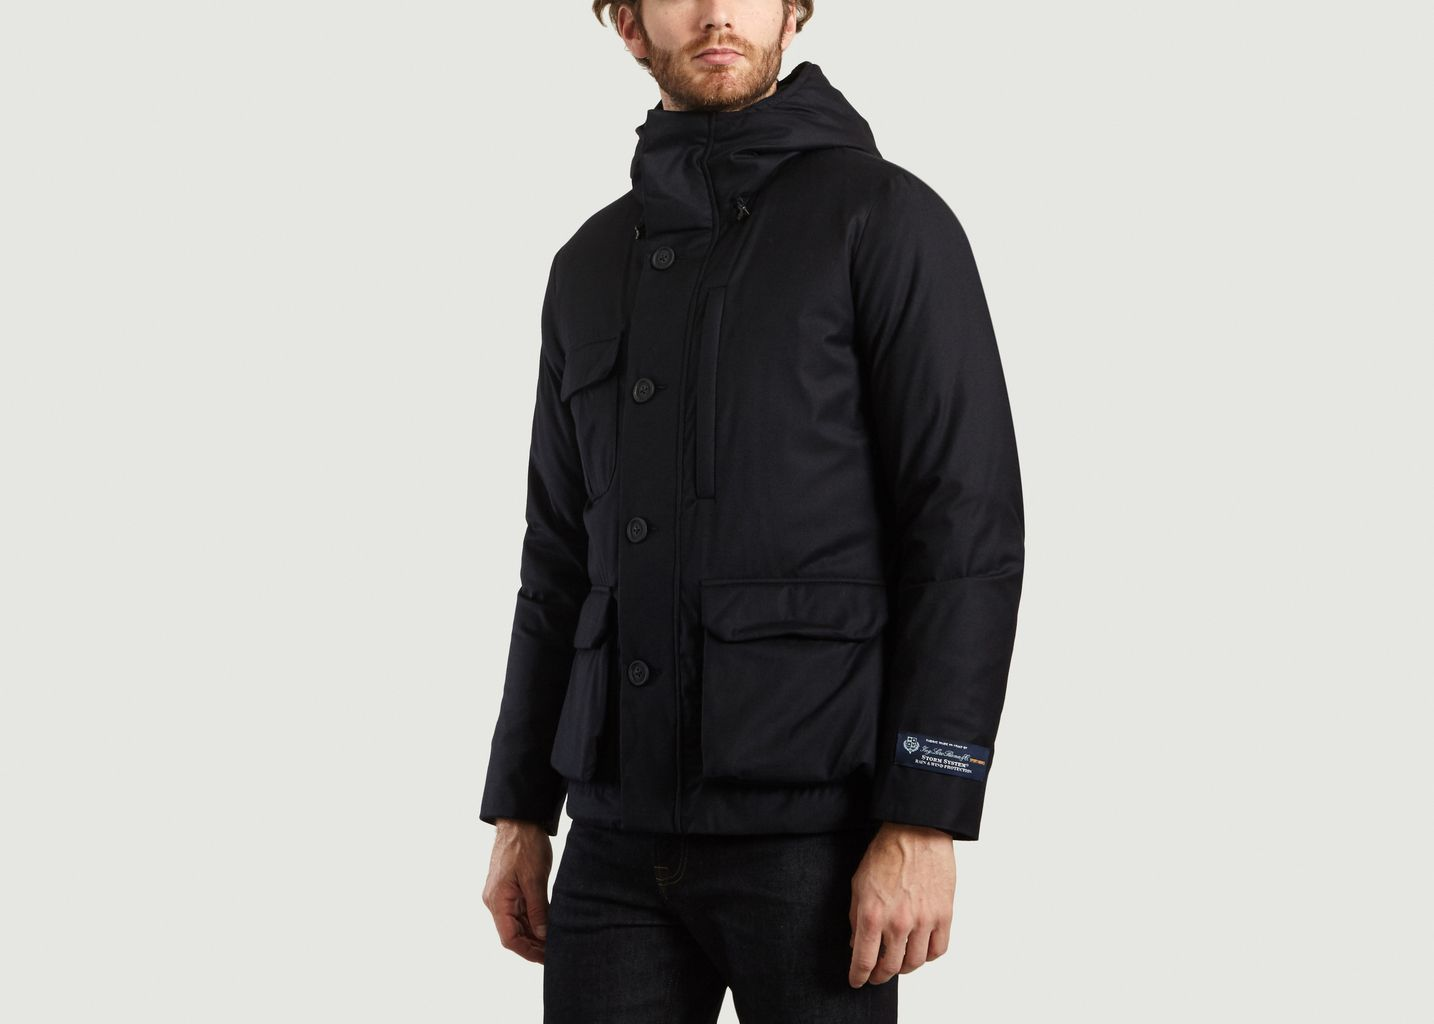 exclusive range quite nice best value Loro Piana Mountain Jacket